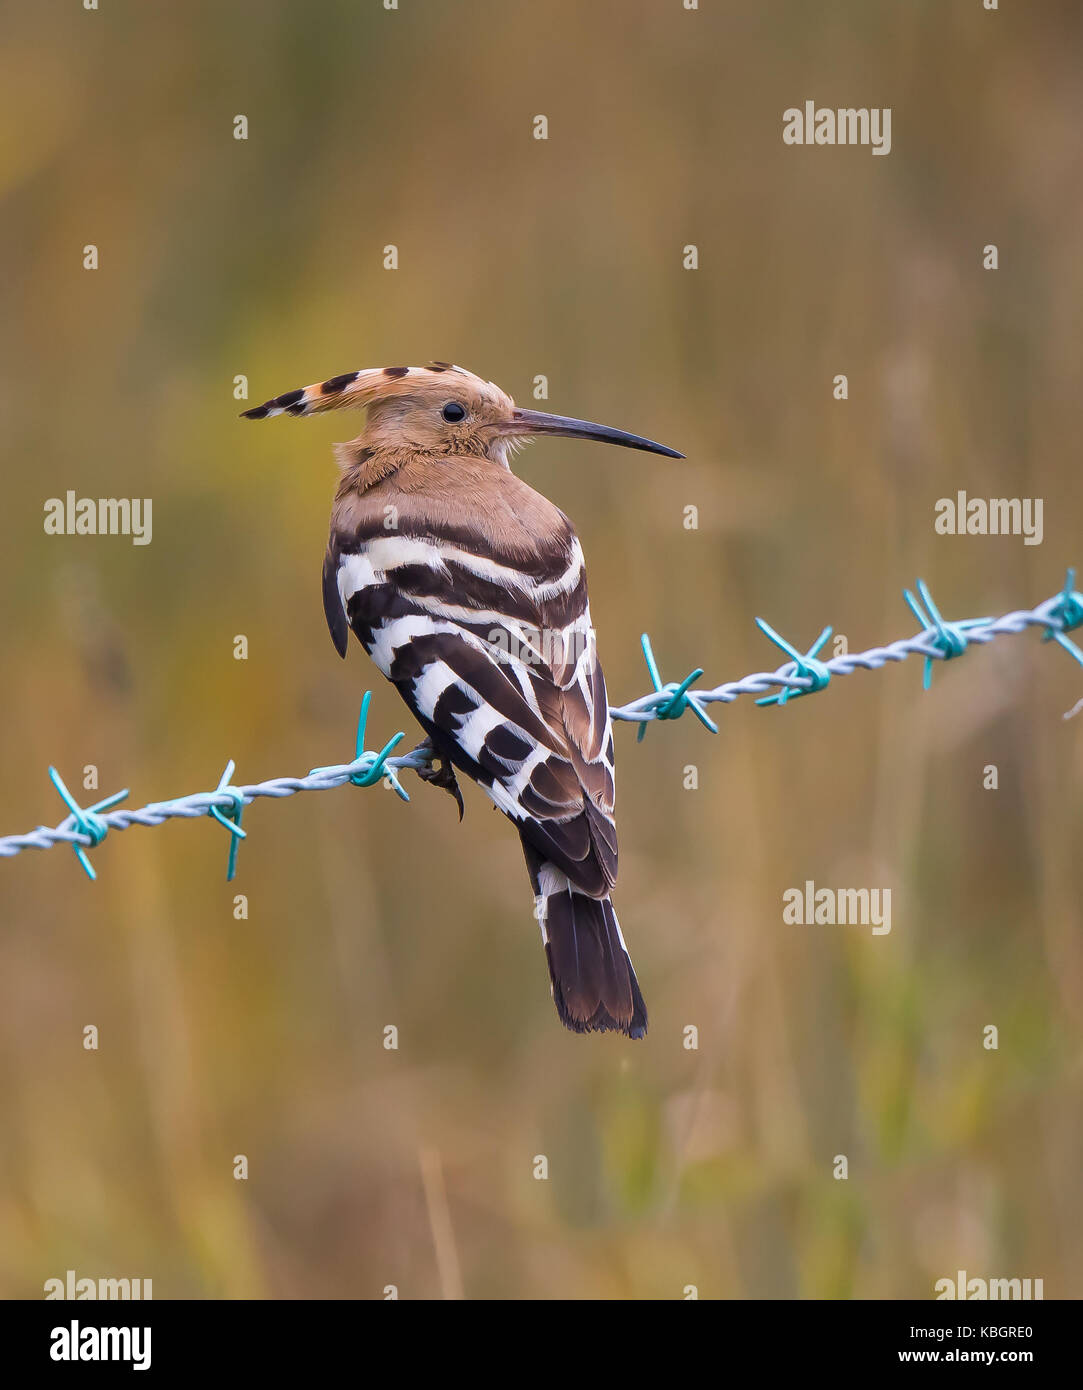 Stunning capture of a rarely-seen adult Hoopoe perched on barbed wire near open grassland, Midlands, UK. Striking - Stock Image